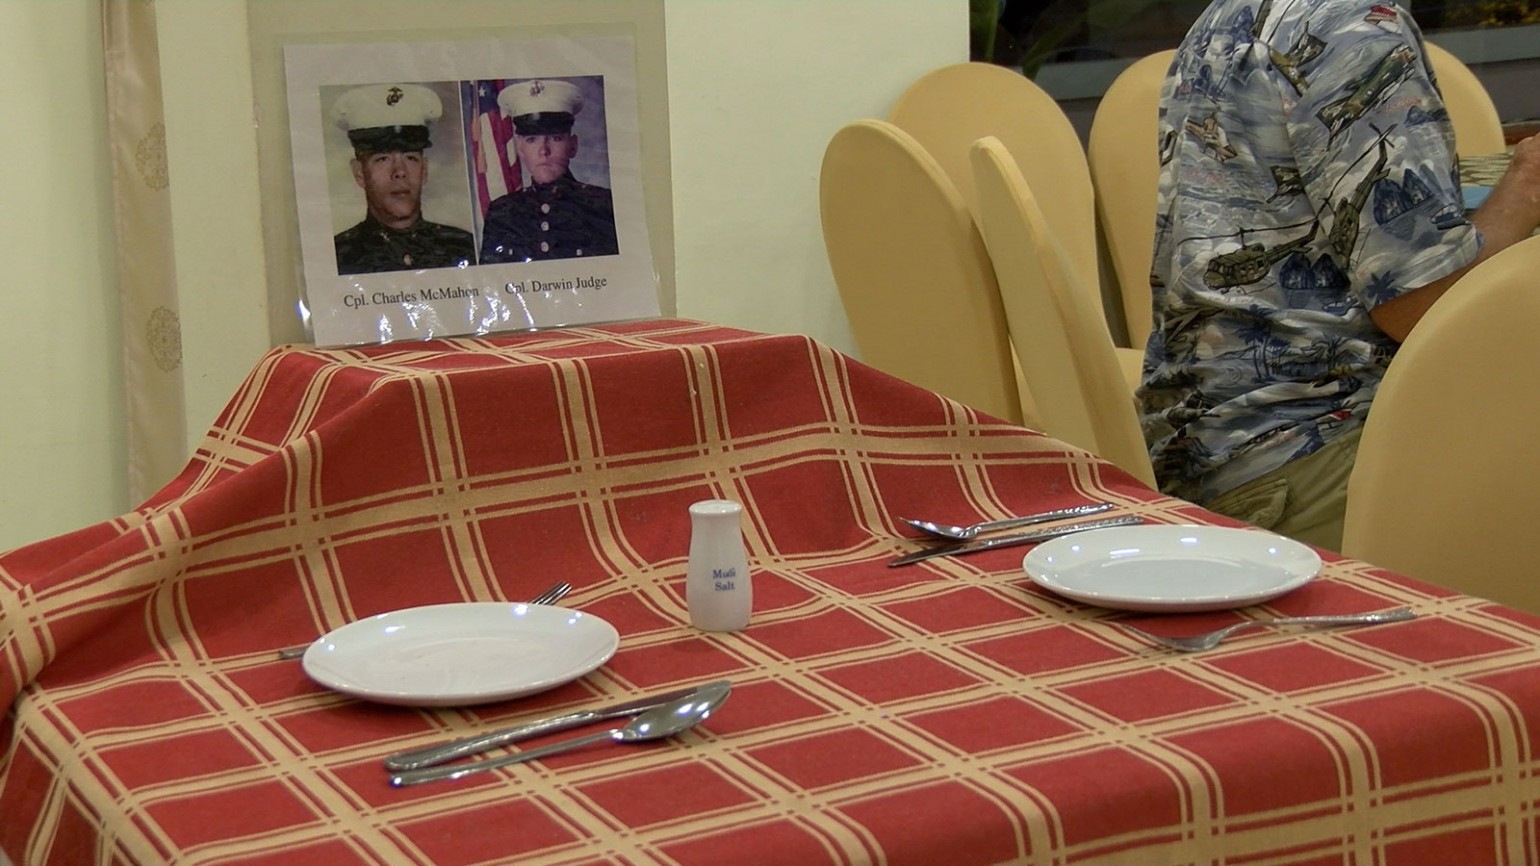 Table set for fallen friends Cpl. Charles McMahon and Cpl. Darwin Judge. Photo courtesy of Pat Clark.